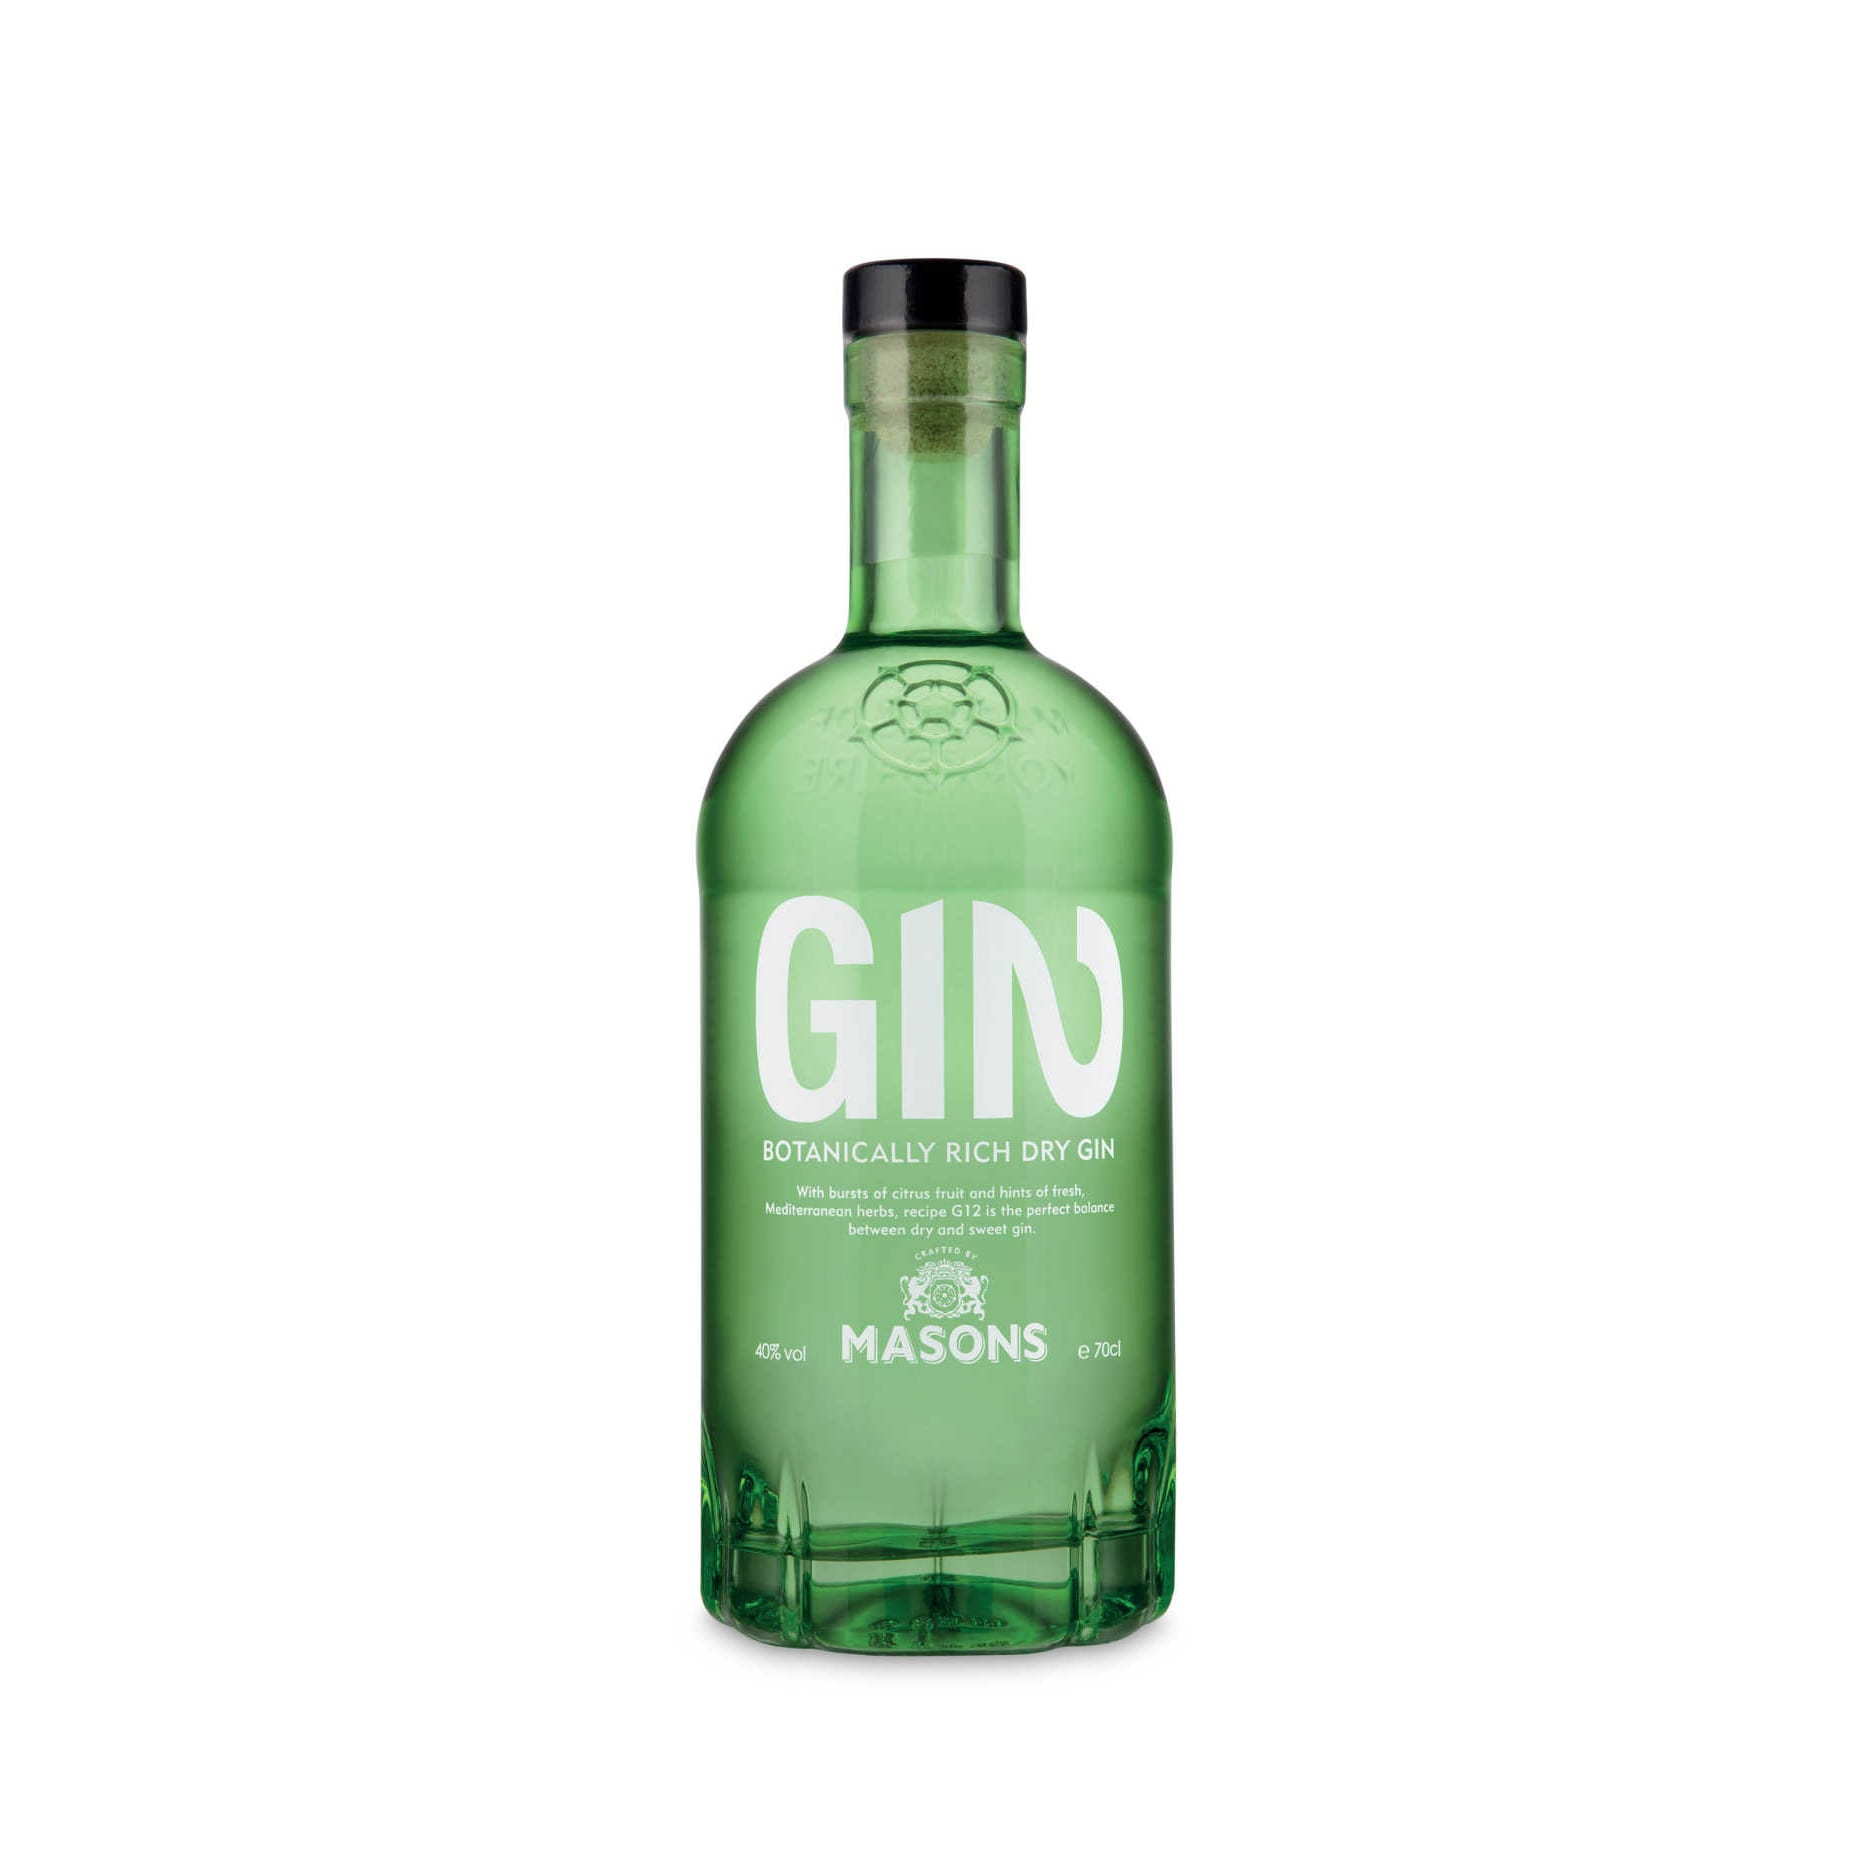 G12 Botanically Rich Dry Gin